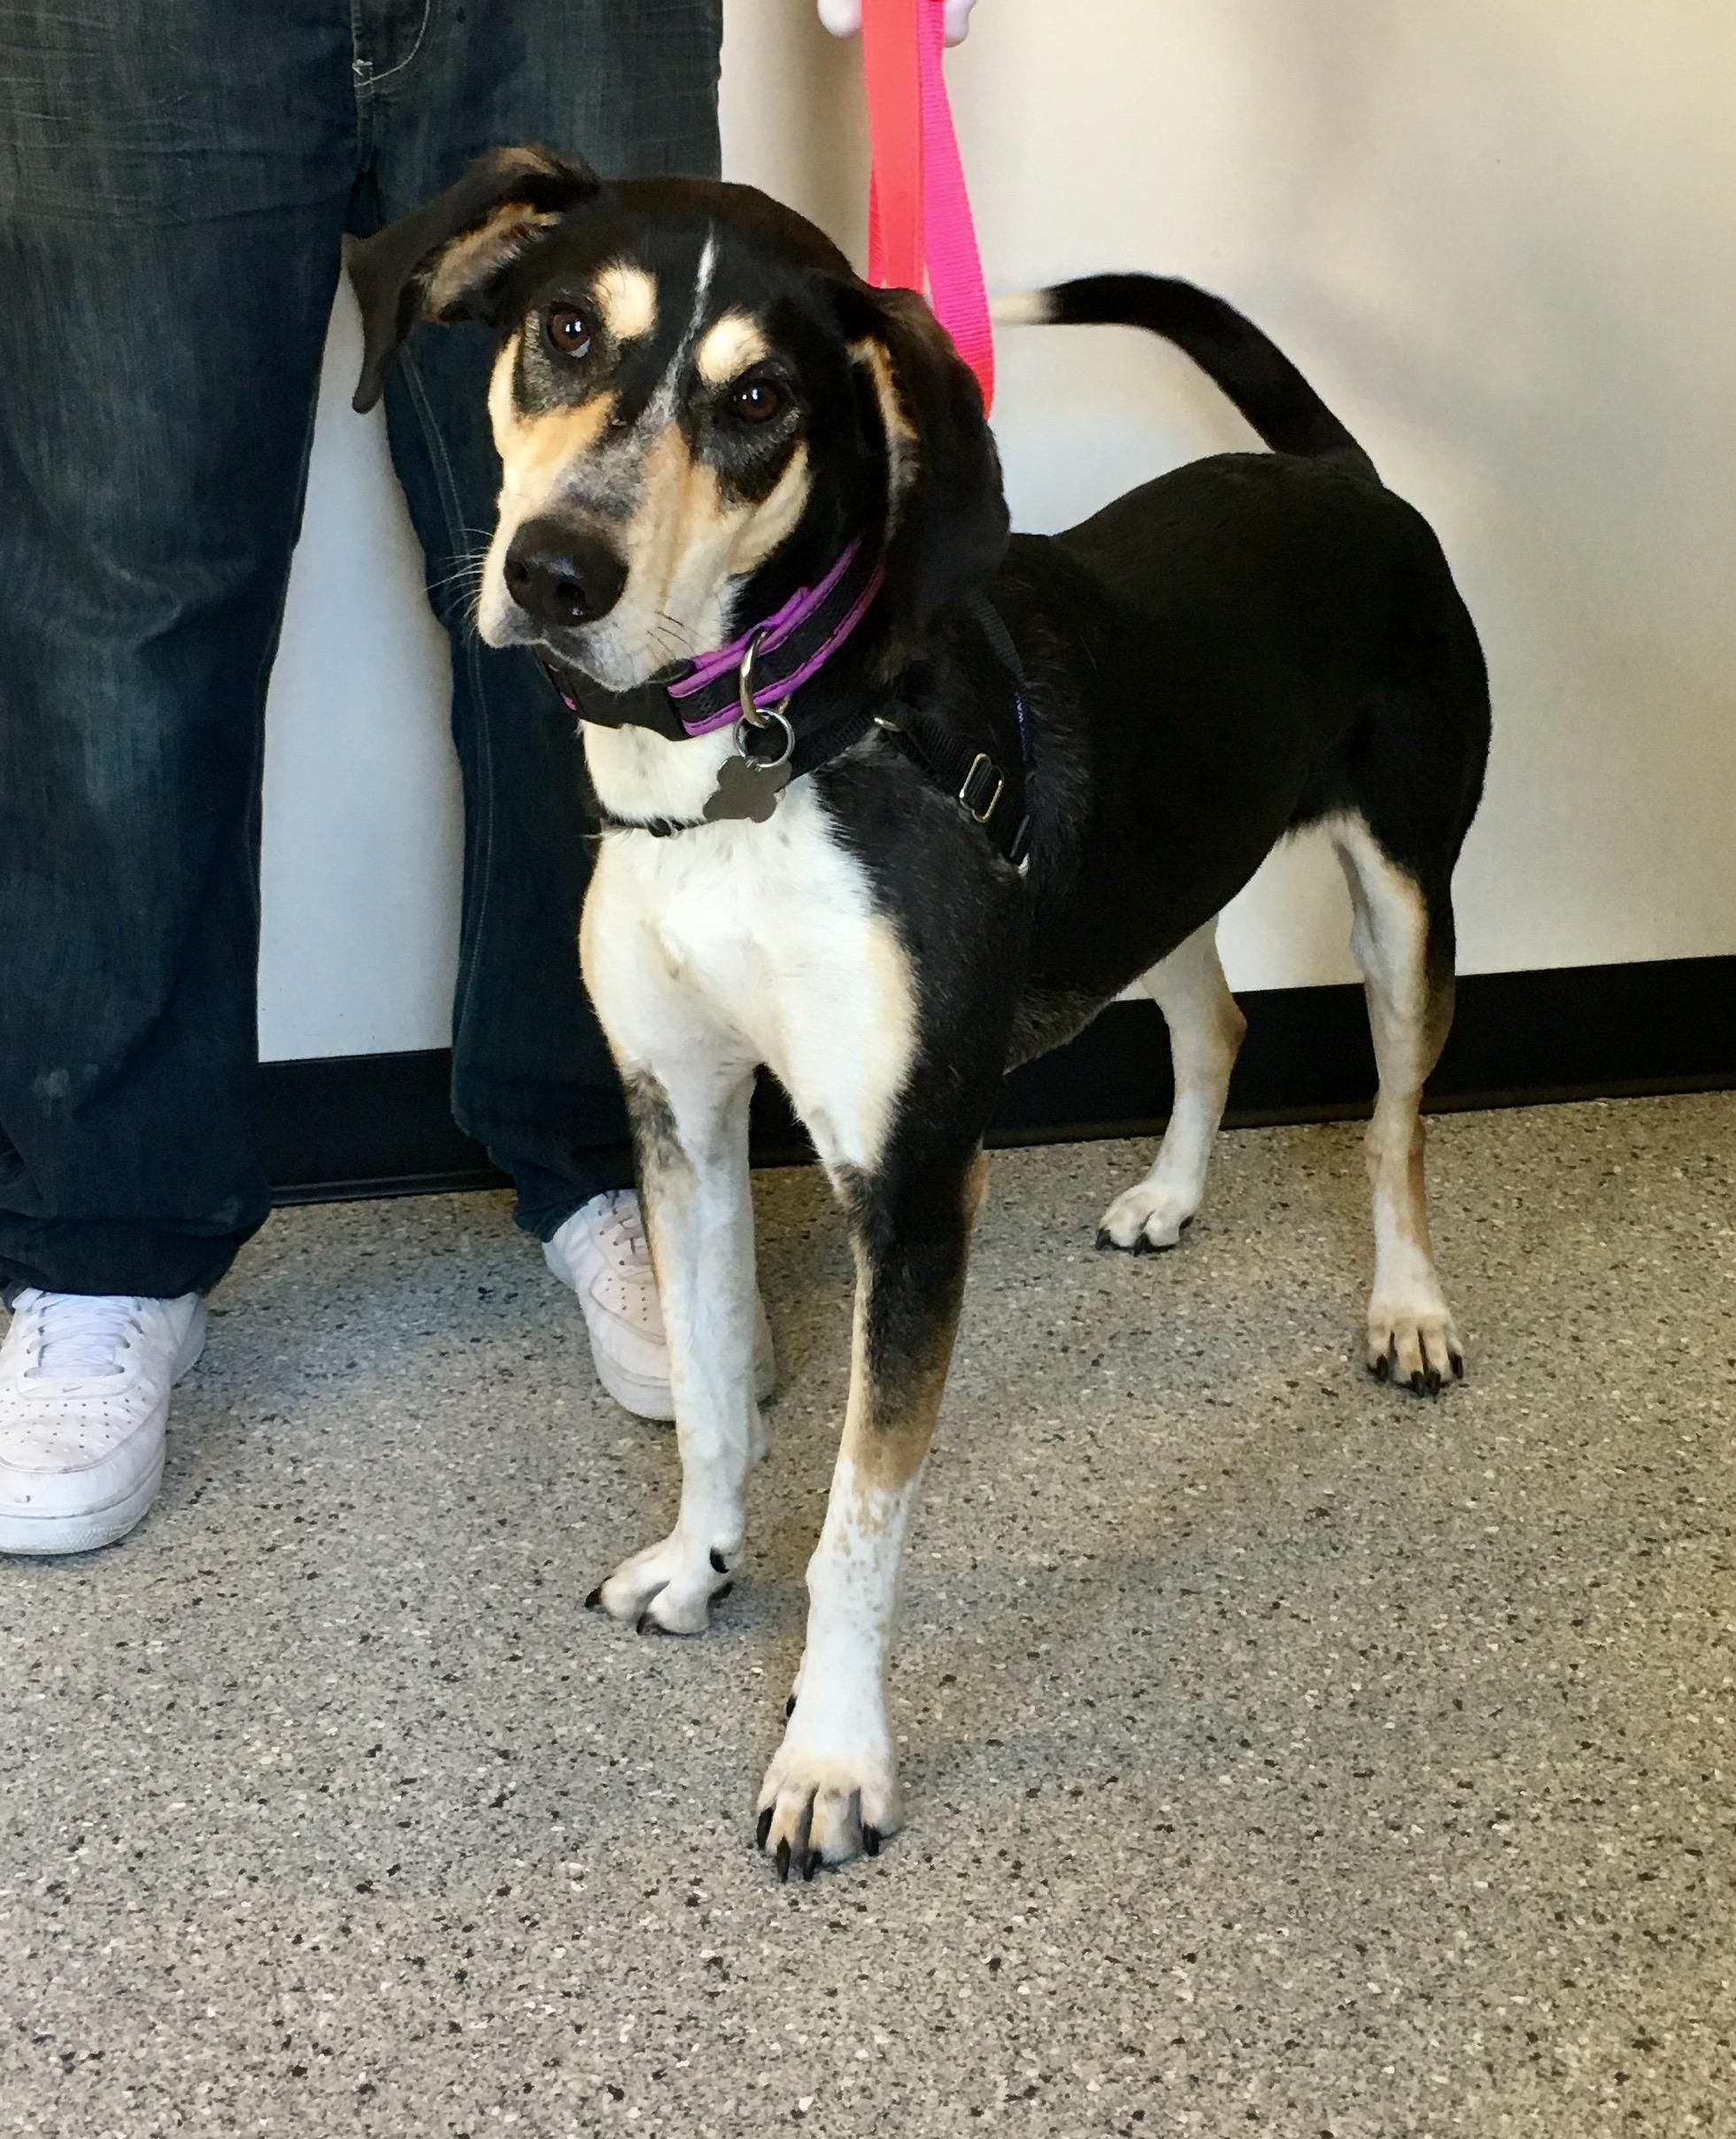 Zelda is an adoptable Hound searching for a forever family